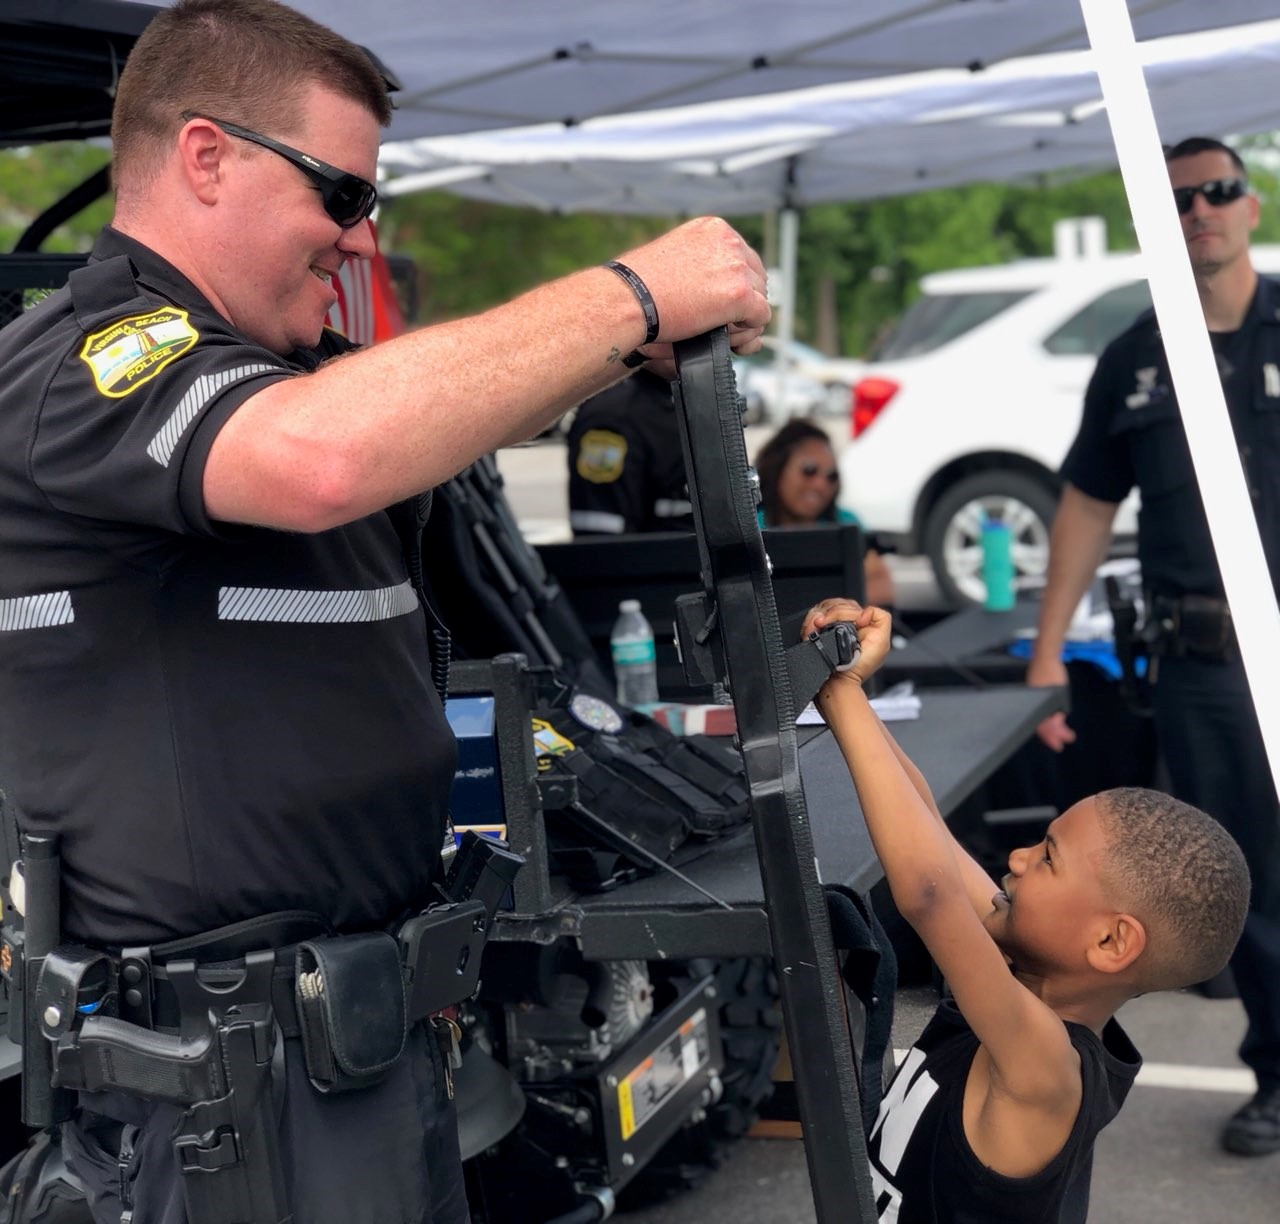 Officer interacting with a boy